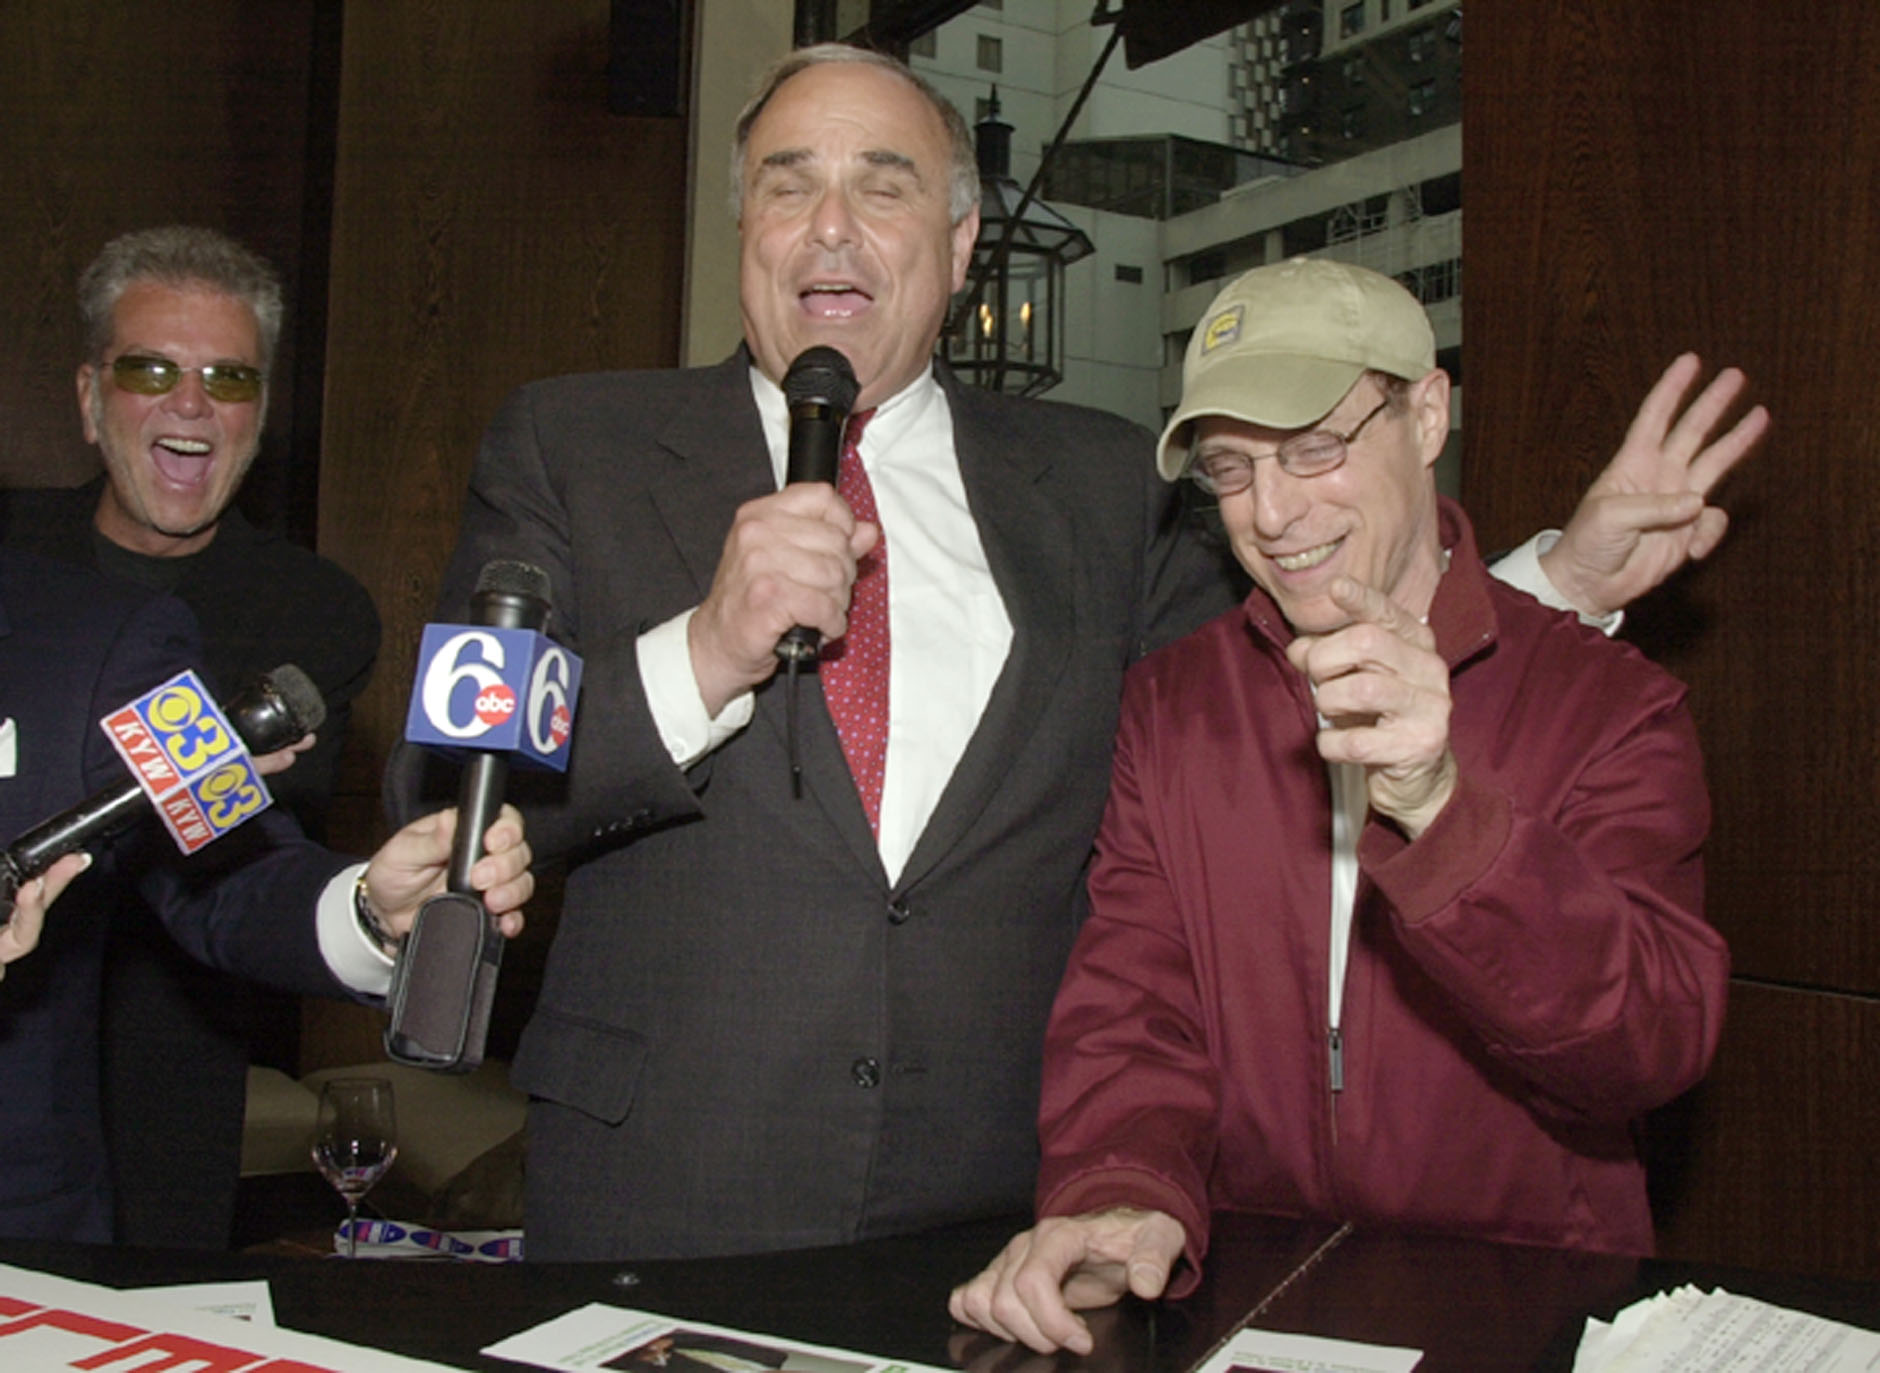 "<div class=""meta image-caption""><div class=""origin-logo origin-image ap""><span>AP</span></div><span class=""caption-text"">Ed Rendell with radio personality Jerry Blavat during a campaign stop while running for Governor in 2002 (AP Photo/Chris Gardner) (ASSOCIATED PRESS)</span></div>"